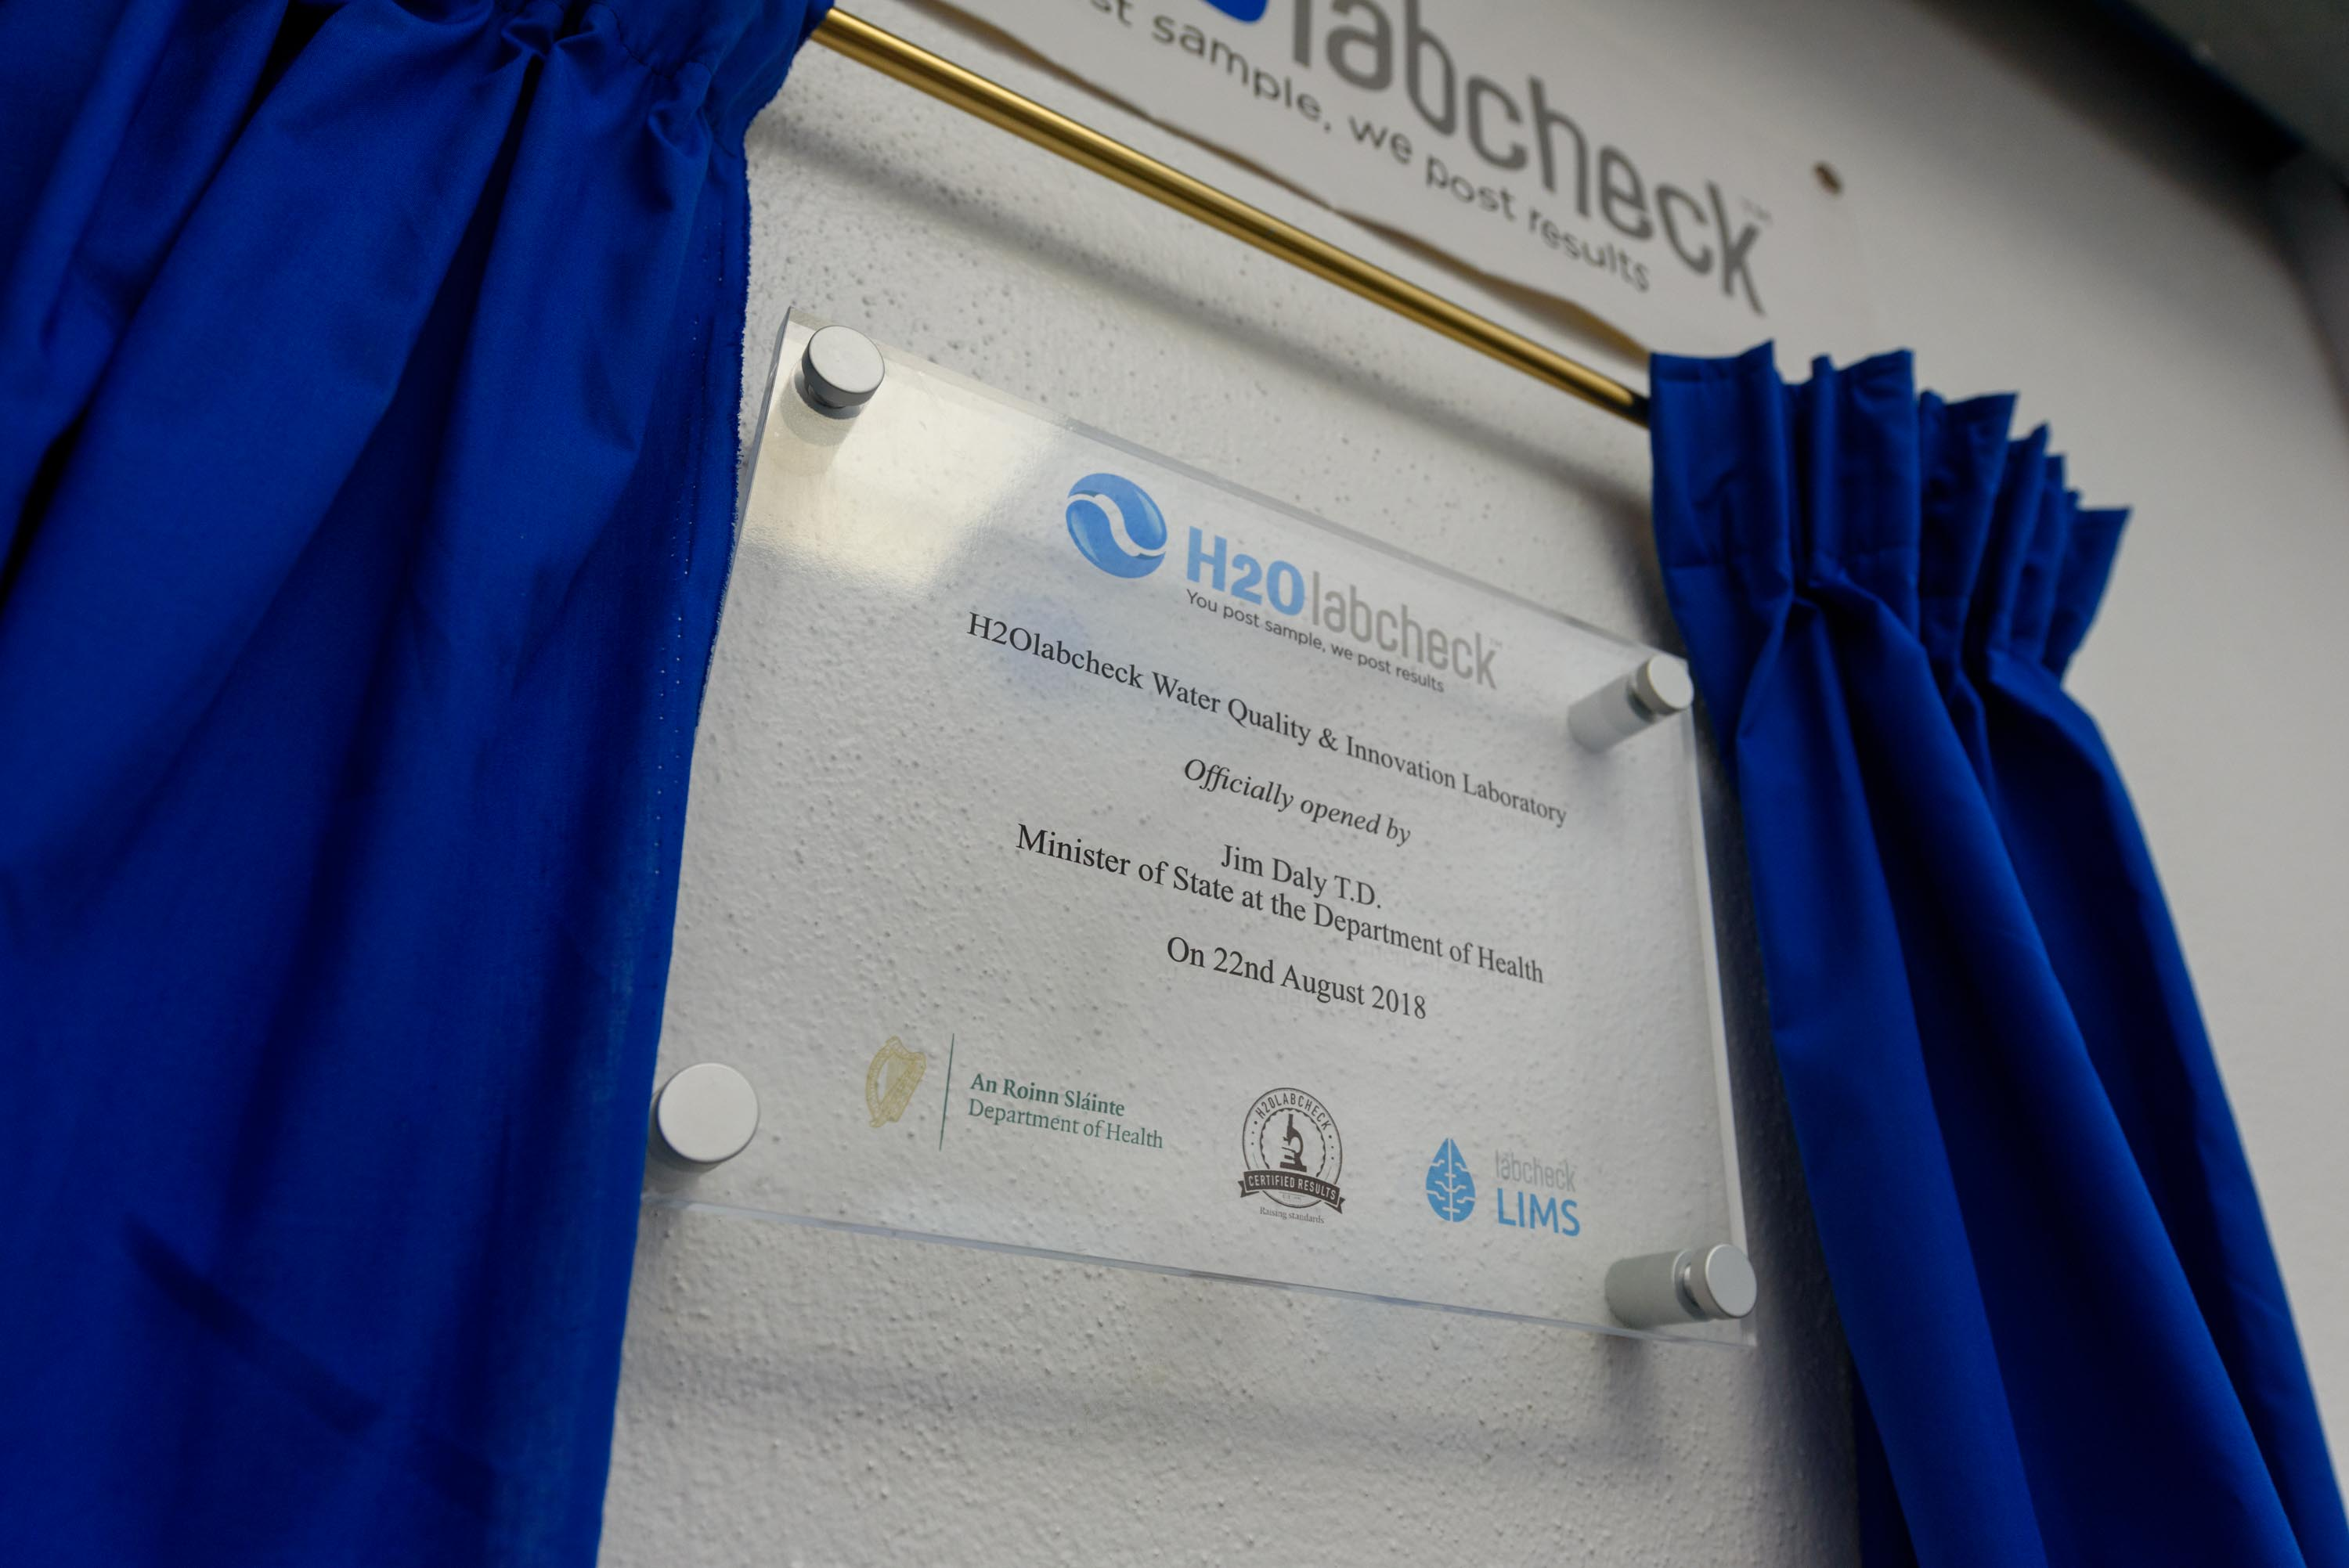 H2Olabcheck Laboratory Opening Plaque